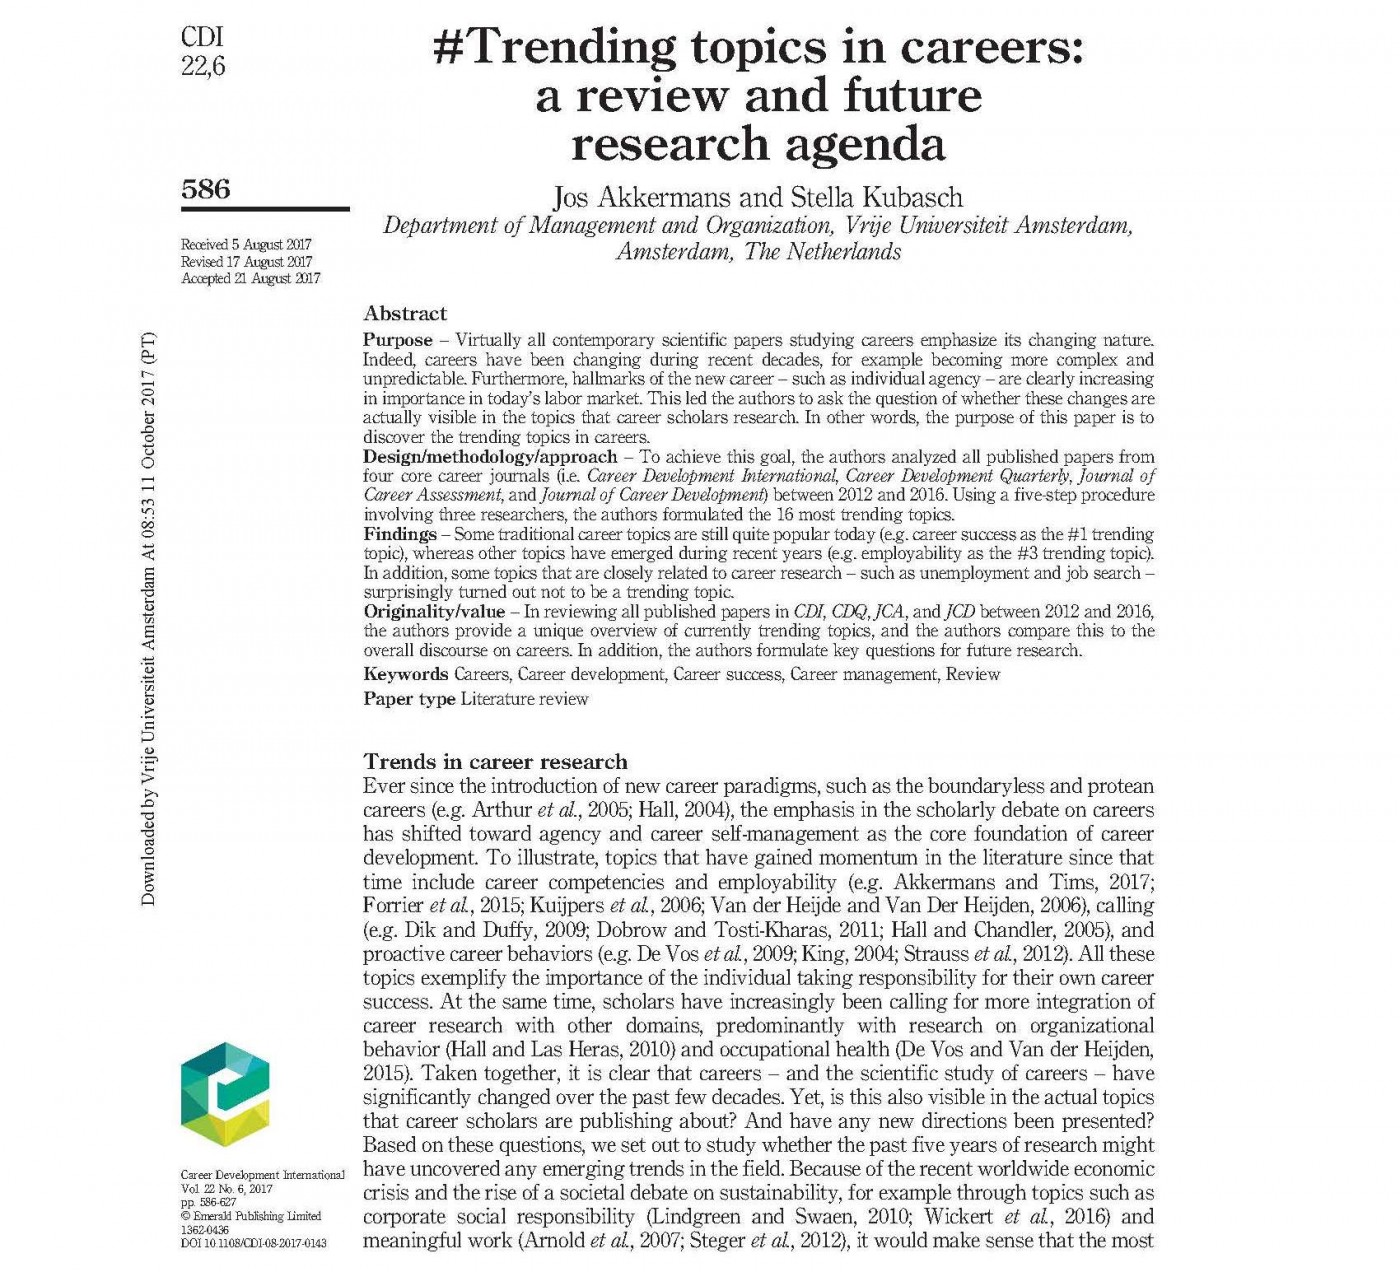 022 59e096d33a29650001209782 1620 20akkermans202620kubasch20201720 20trending20topics20in20careers Research Paper Topics For Impressive Papers High School Students In The Philippines Elementary Education Good History 1400